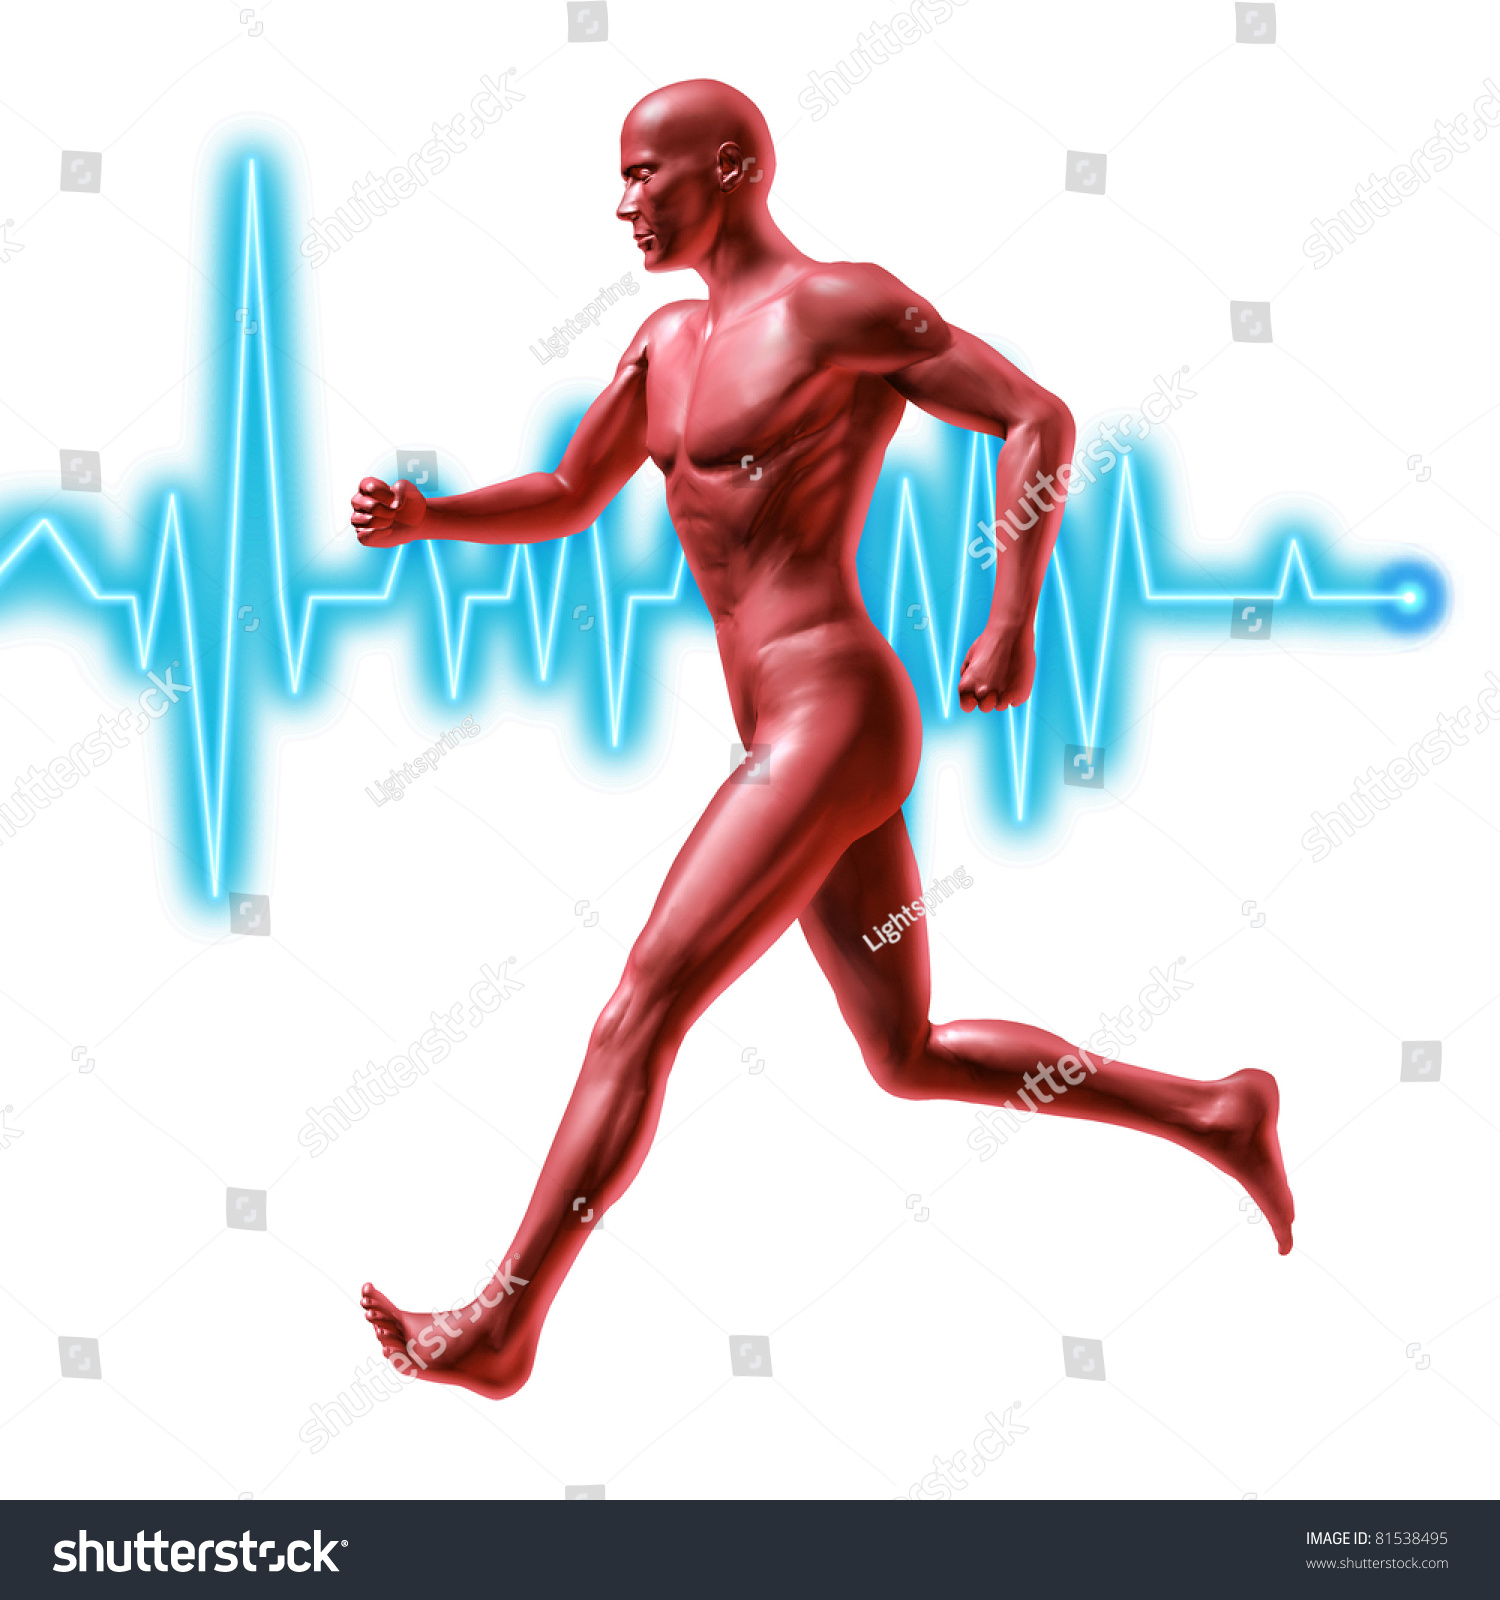 Exercise Fitness Symbol Represented By Jogging Stock ...